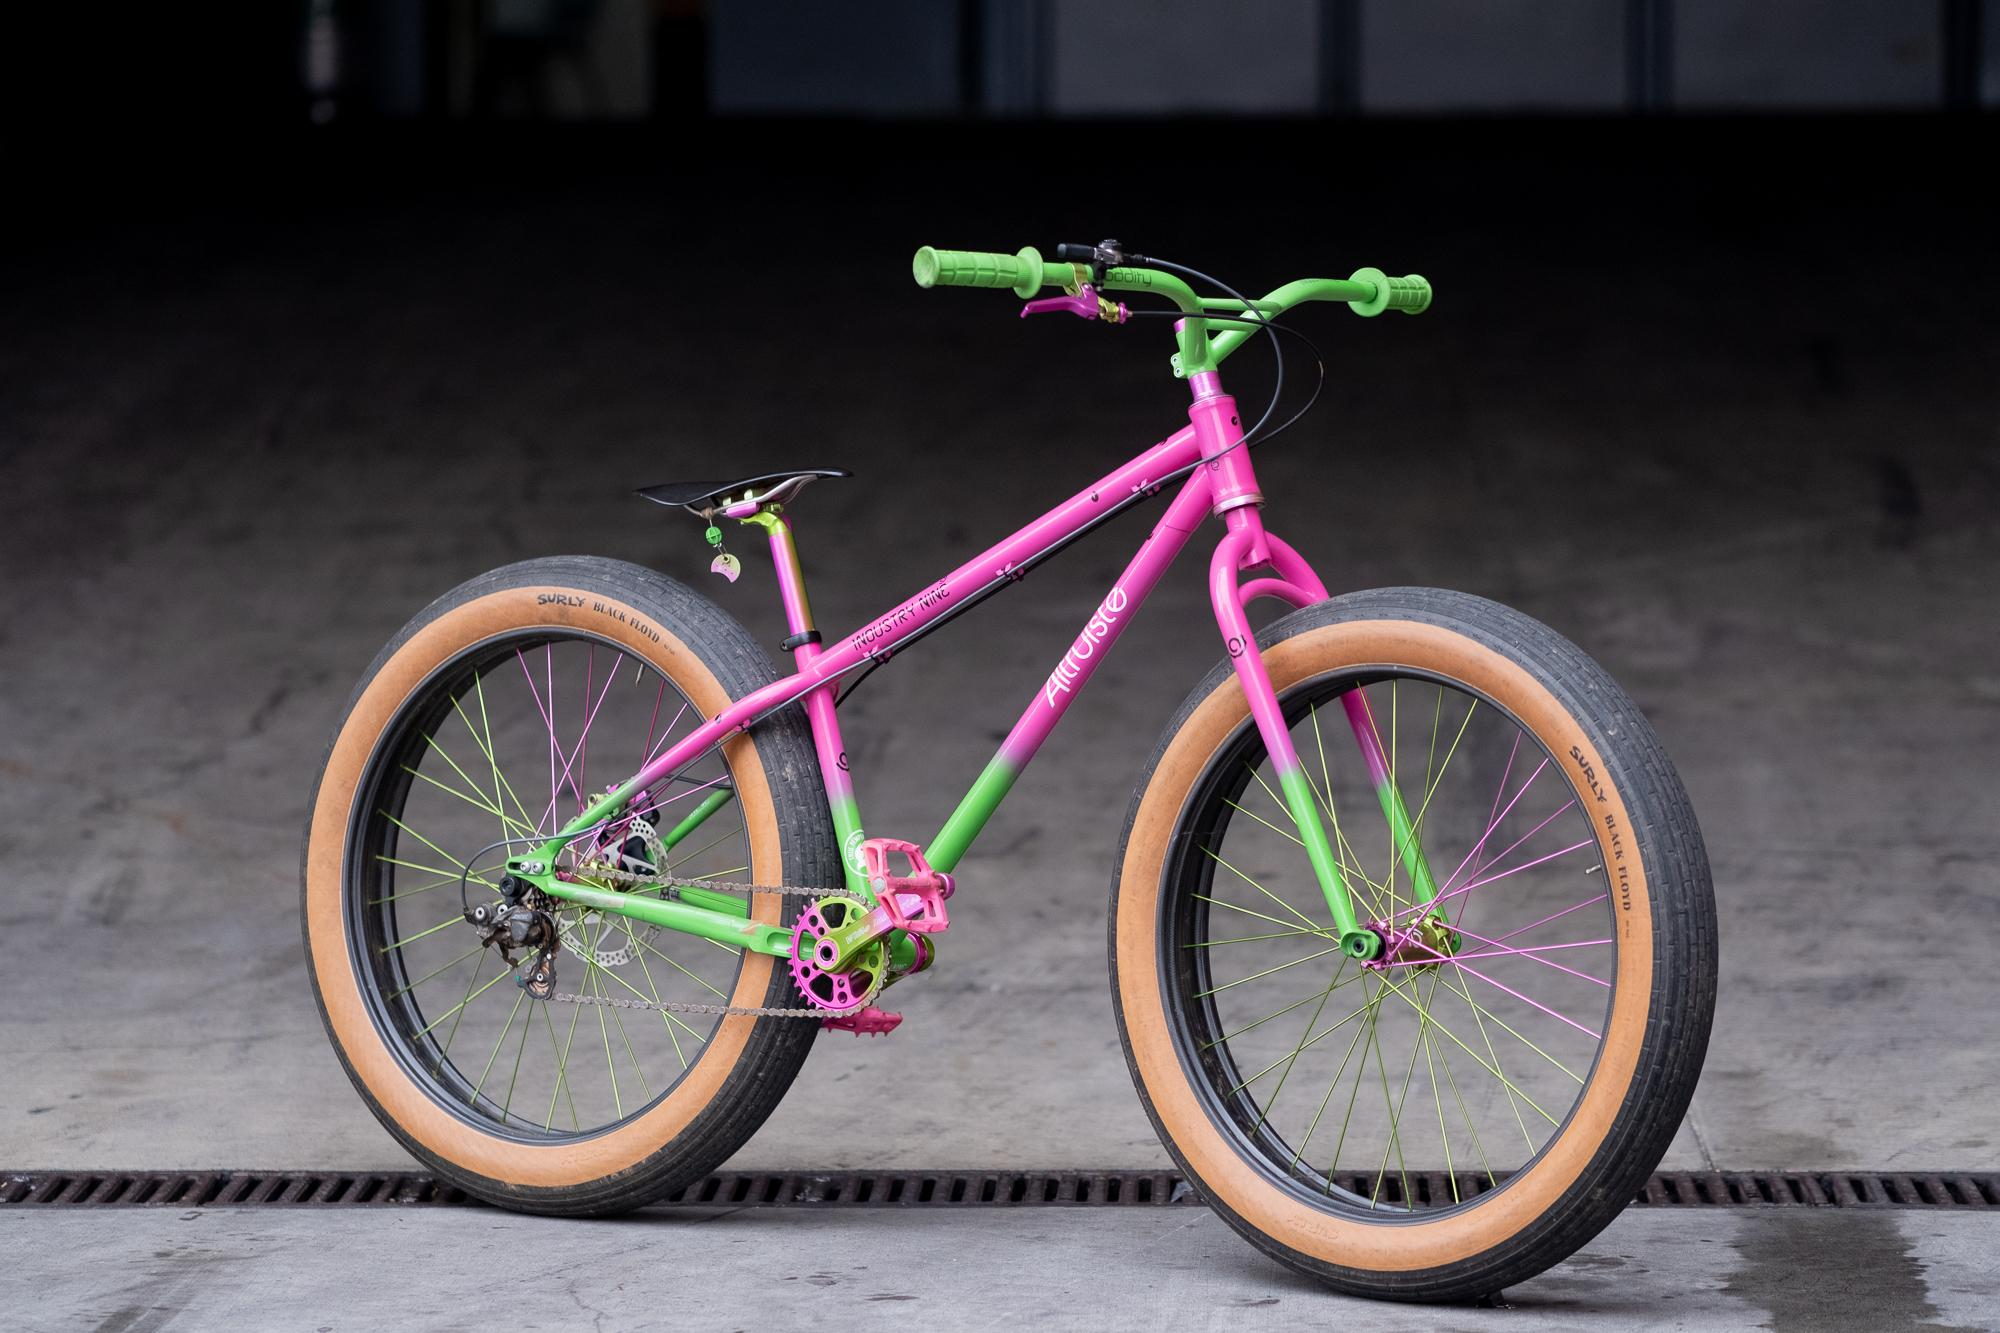 ltruiste Plump Watermelon Pump Track Bike